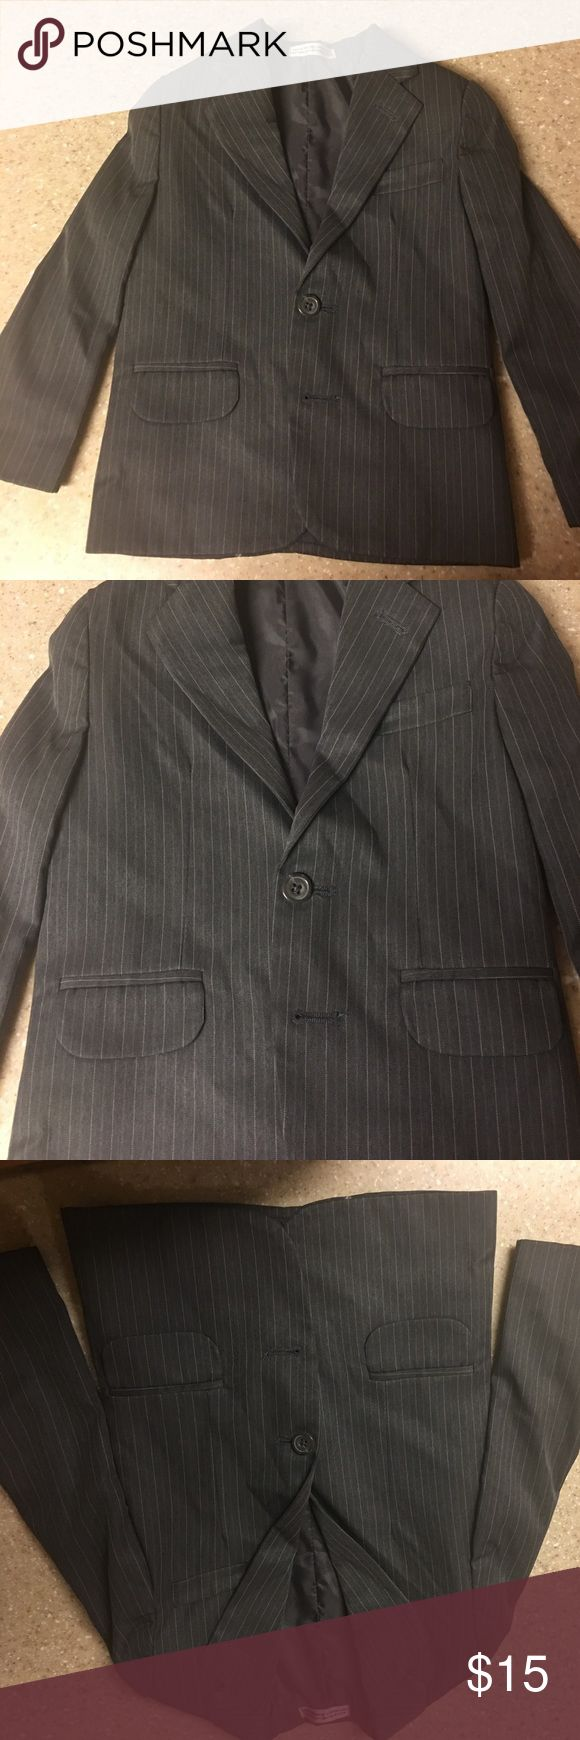 Toddler boys size 4 sports coat Just in time for Easter. Grandson wore once to an event and I had it dry cleaned. Grey pinstripe suit 2 button fully lined.  Size 4 in toddler sizes. Very nice! Jackets & Coats